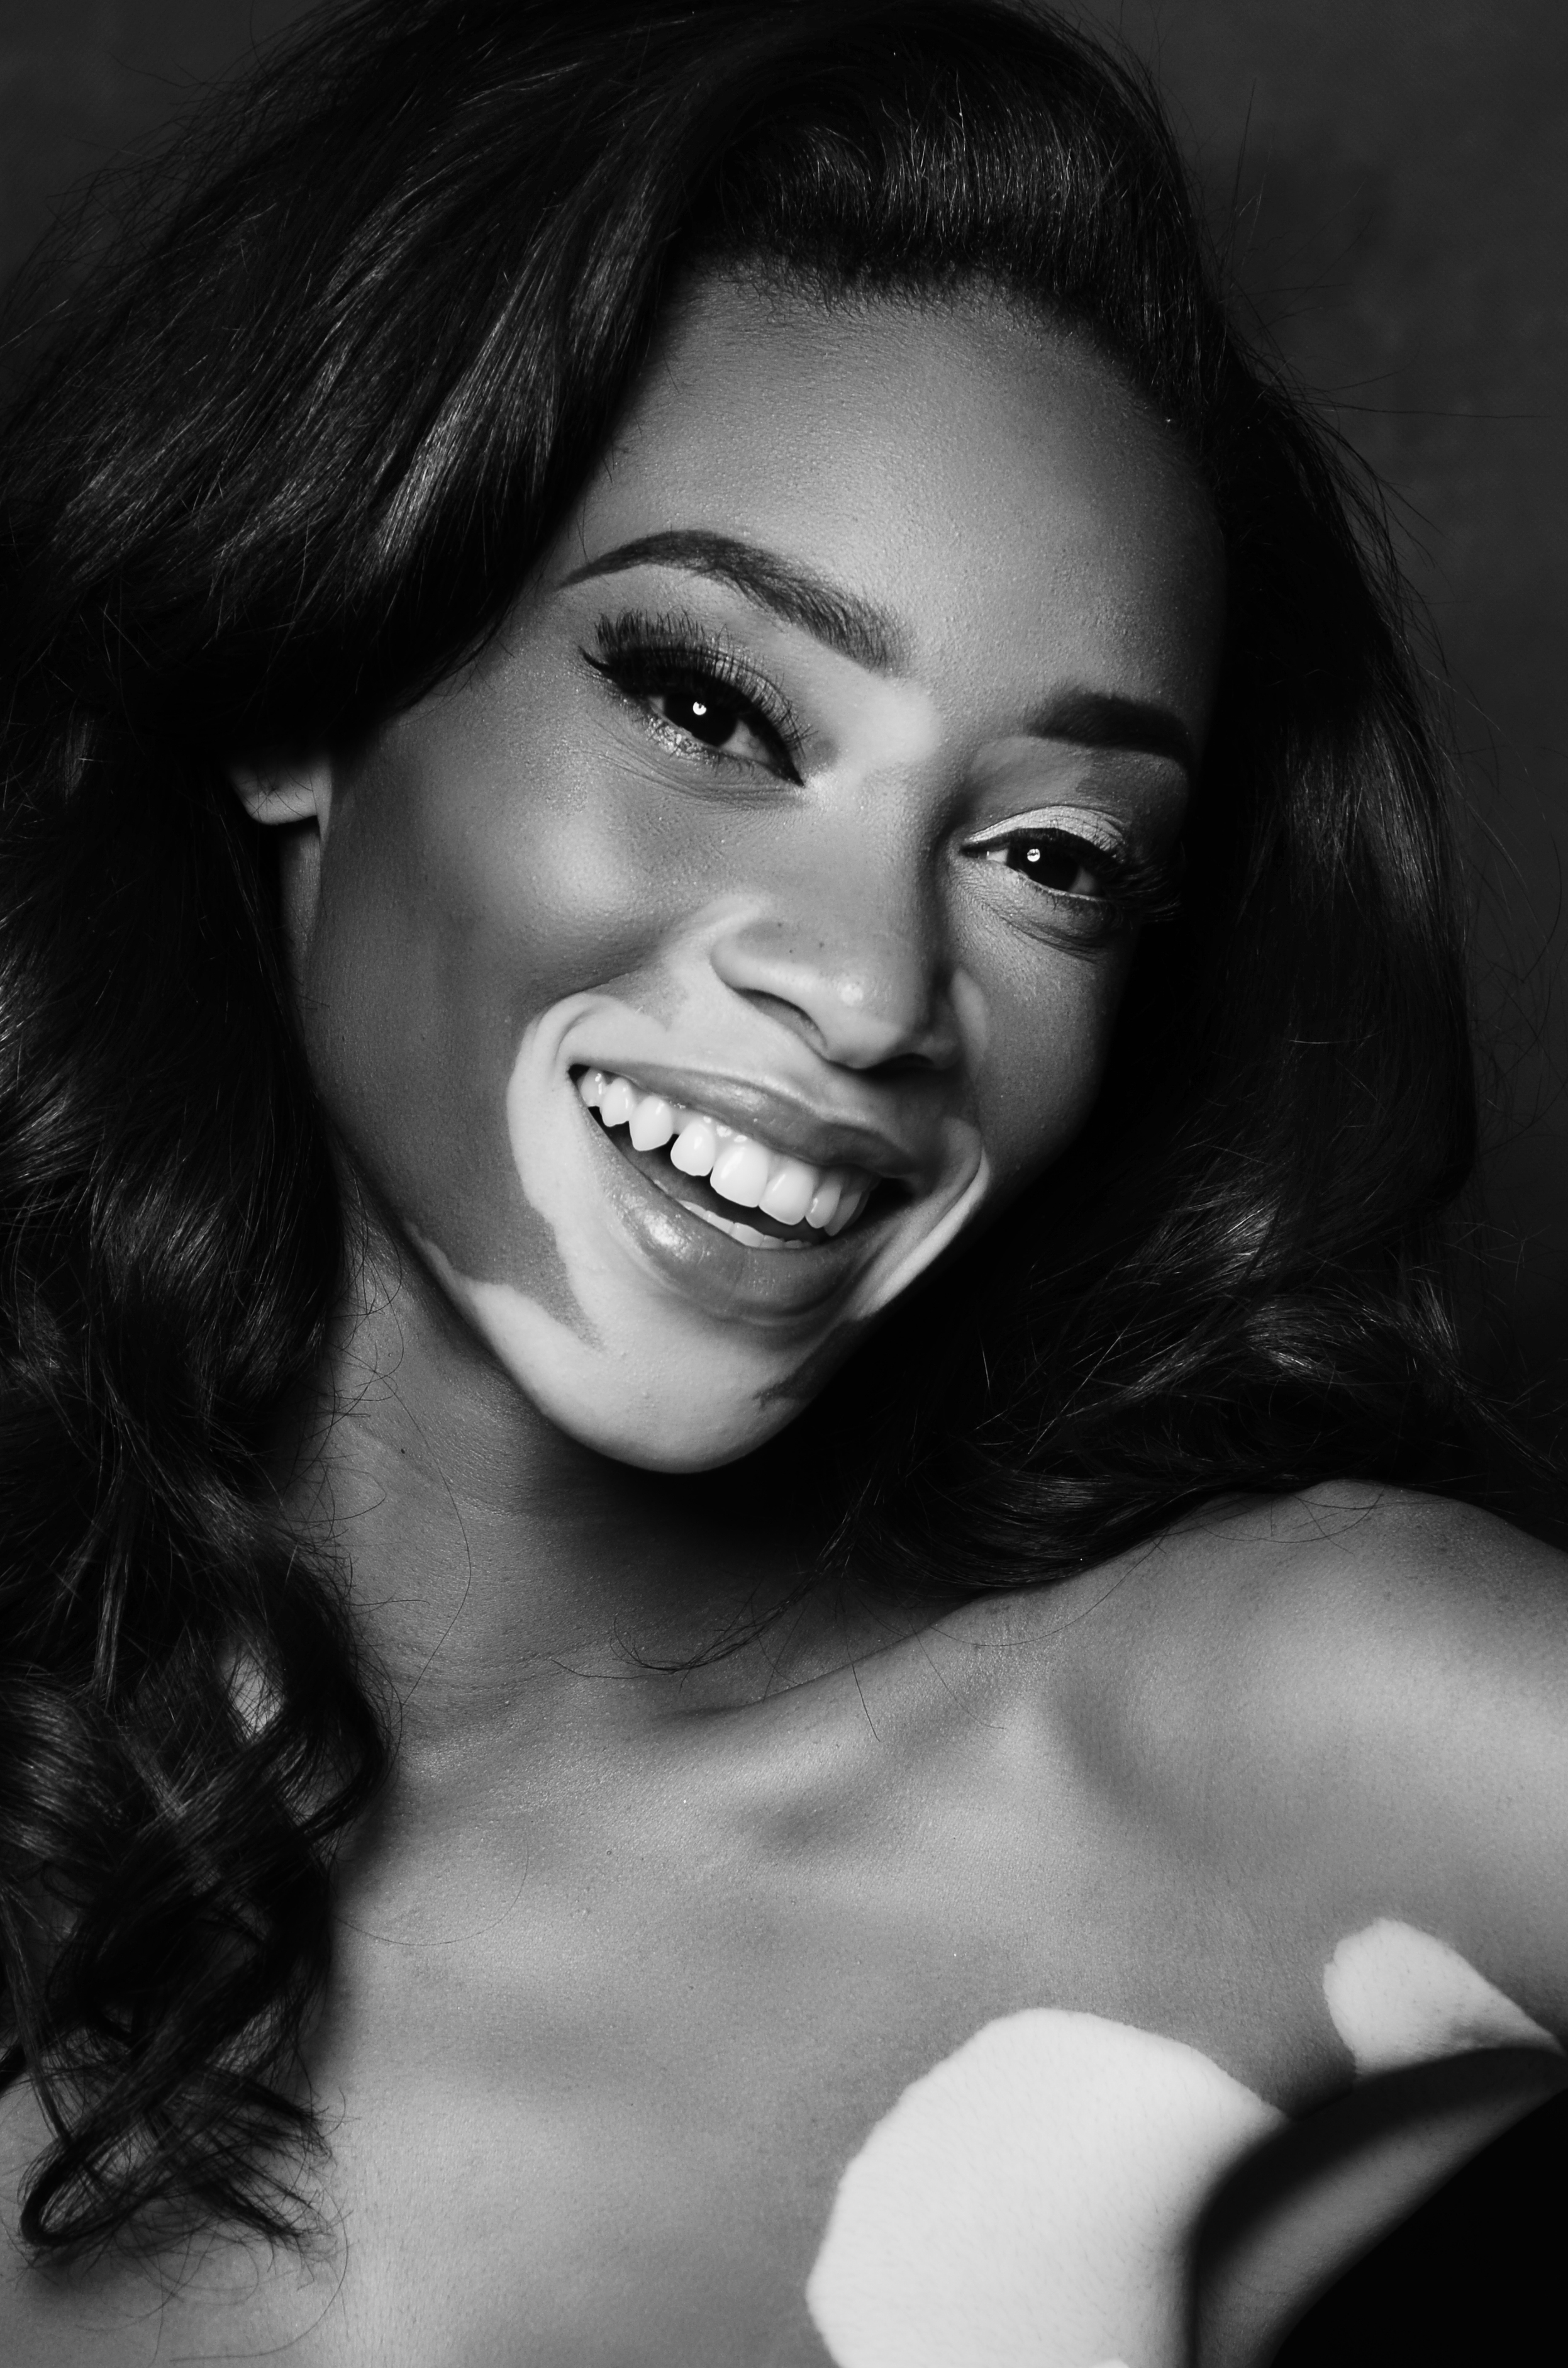 Winnie Harlow S Changing The Face Of Fashion Cnn Style